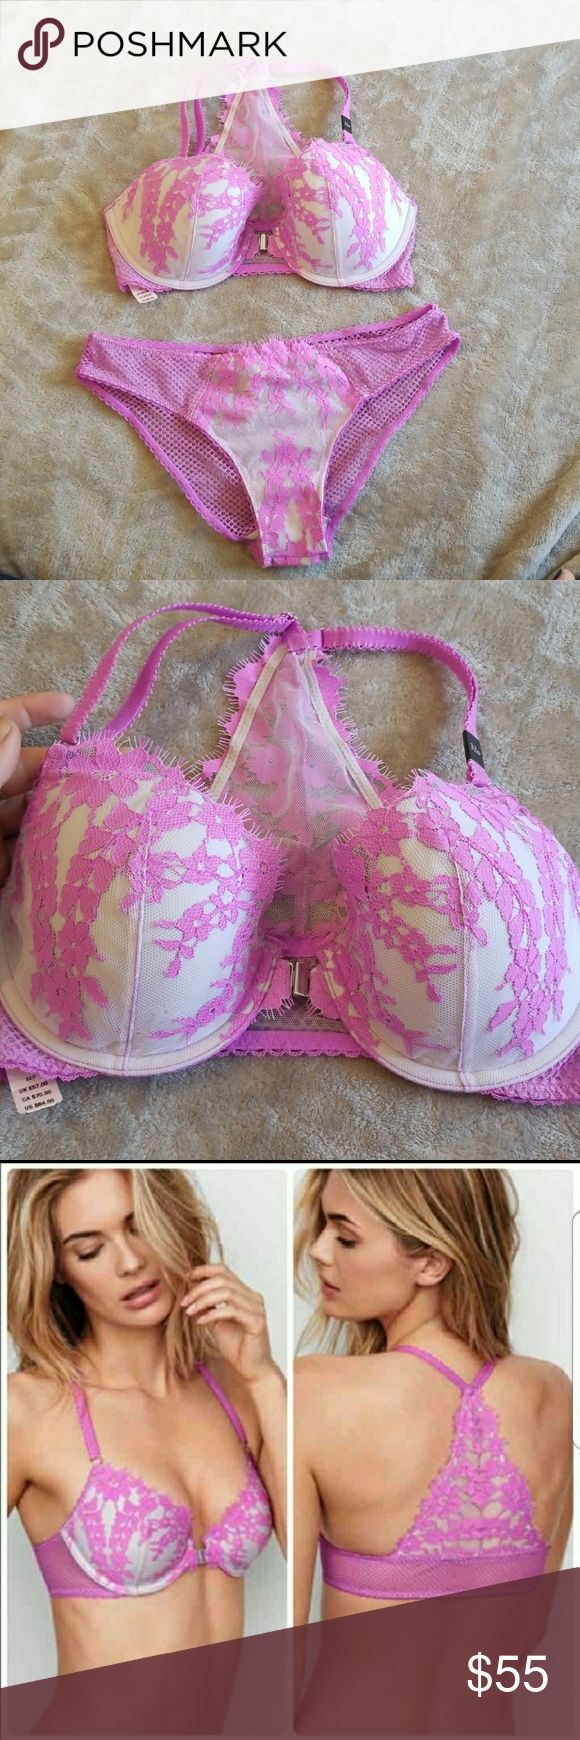 """SET! Victoria's Secret DREAM ANGELS bra & panty NWT. Bra size 32D (According to the Victoria's secret size chart the sister size of 32D is 34C) panty size small. From the dream angels collection. Very sexy lace, beautiful floral pattern, sexy lace back! Front closure, adjustable straps. Panty is """"cheekini"""" style. Bundle with other items to save on price and shipping! Victoria's Secret Intimates & Sleepwear"""